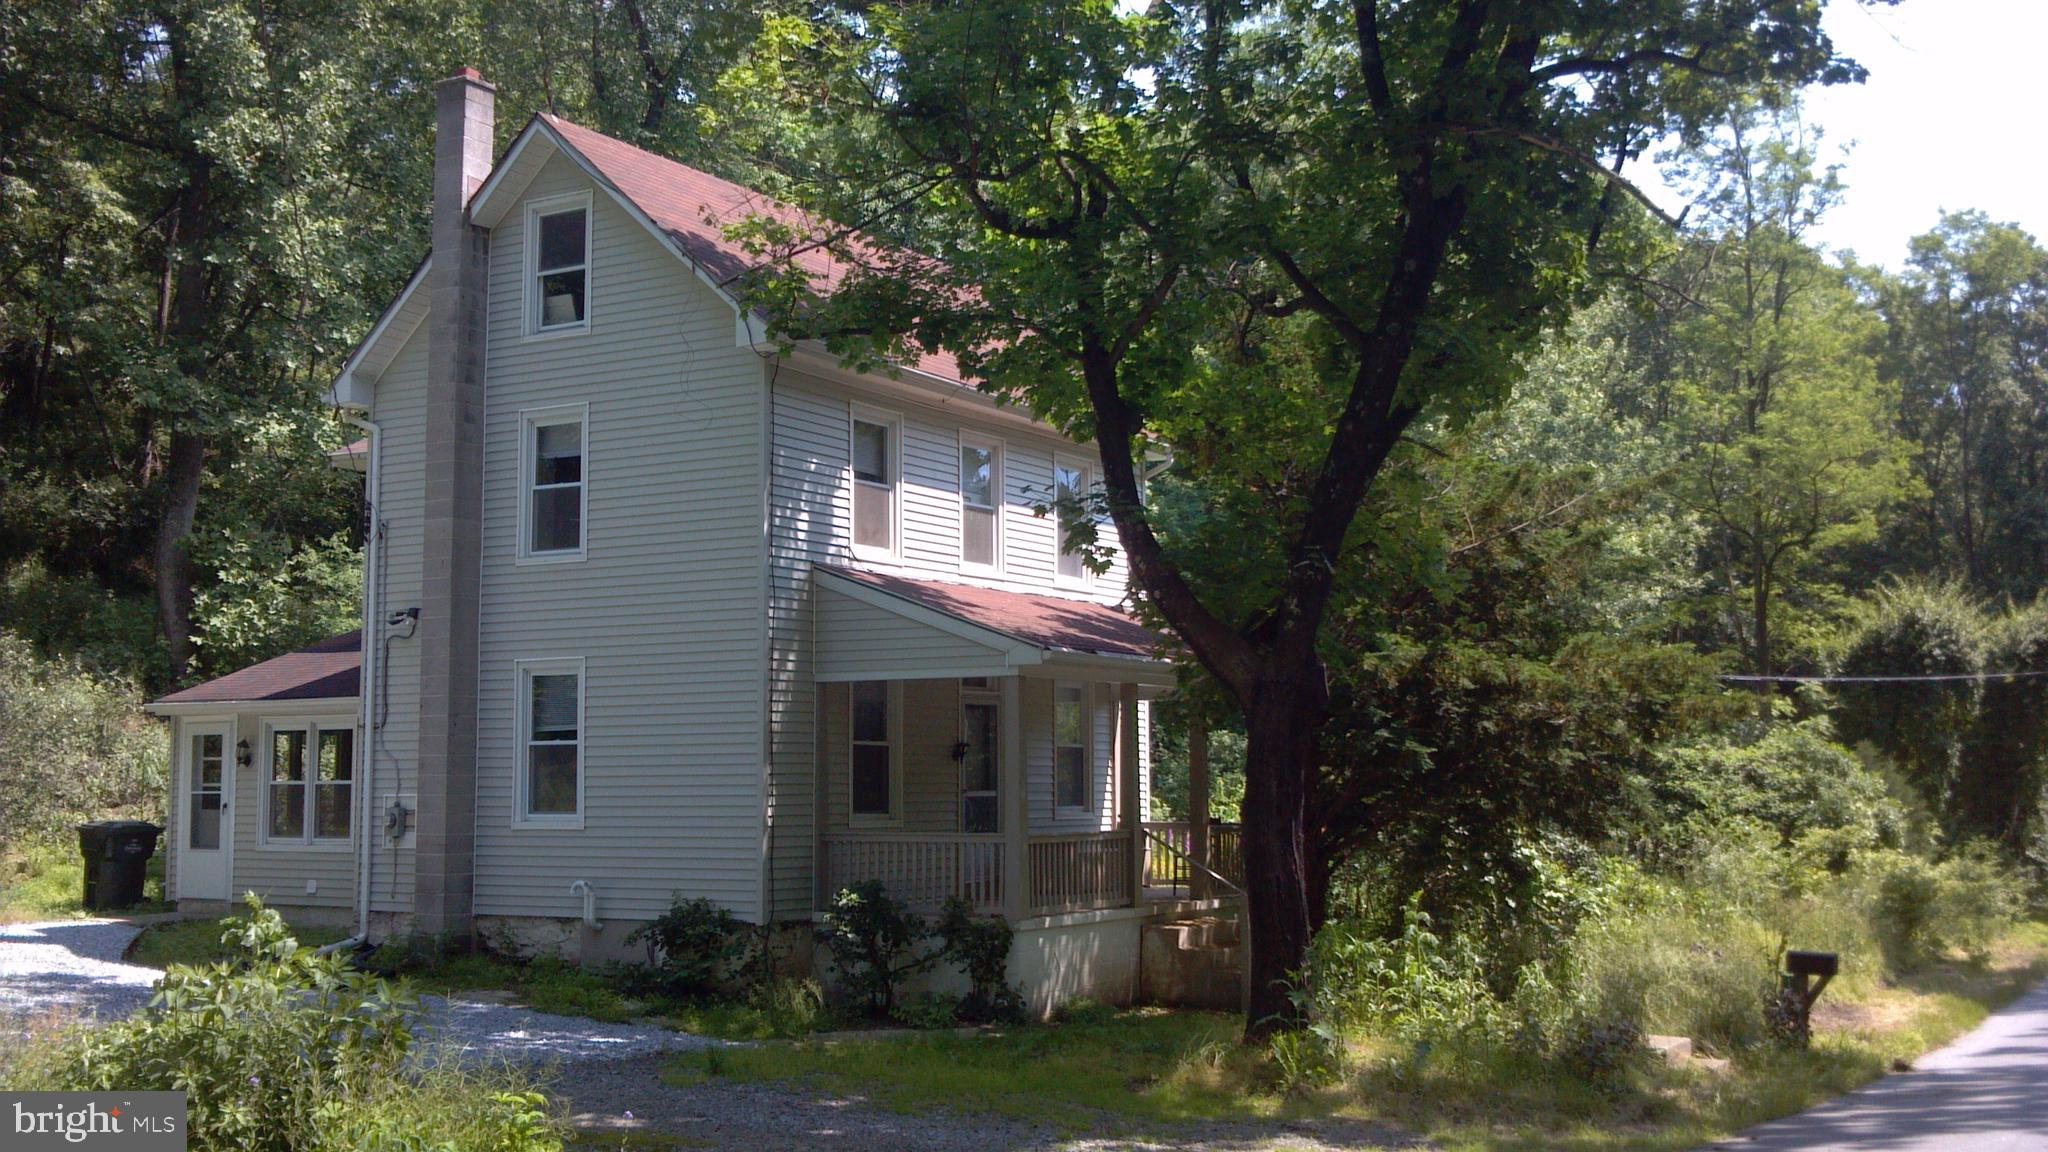 167 FROG HOLLOW RD